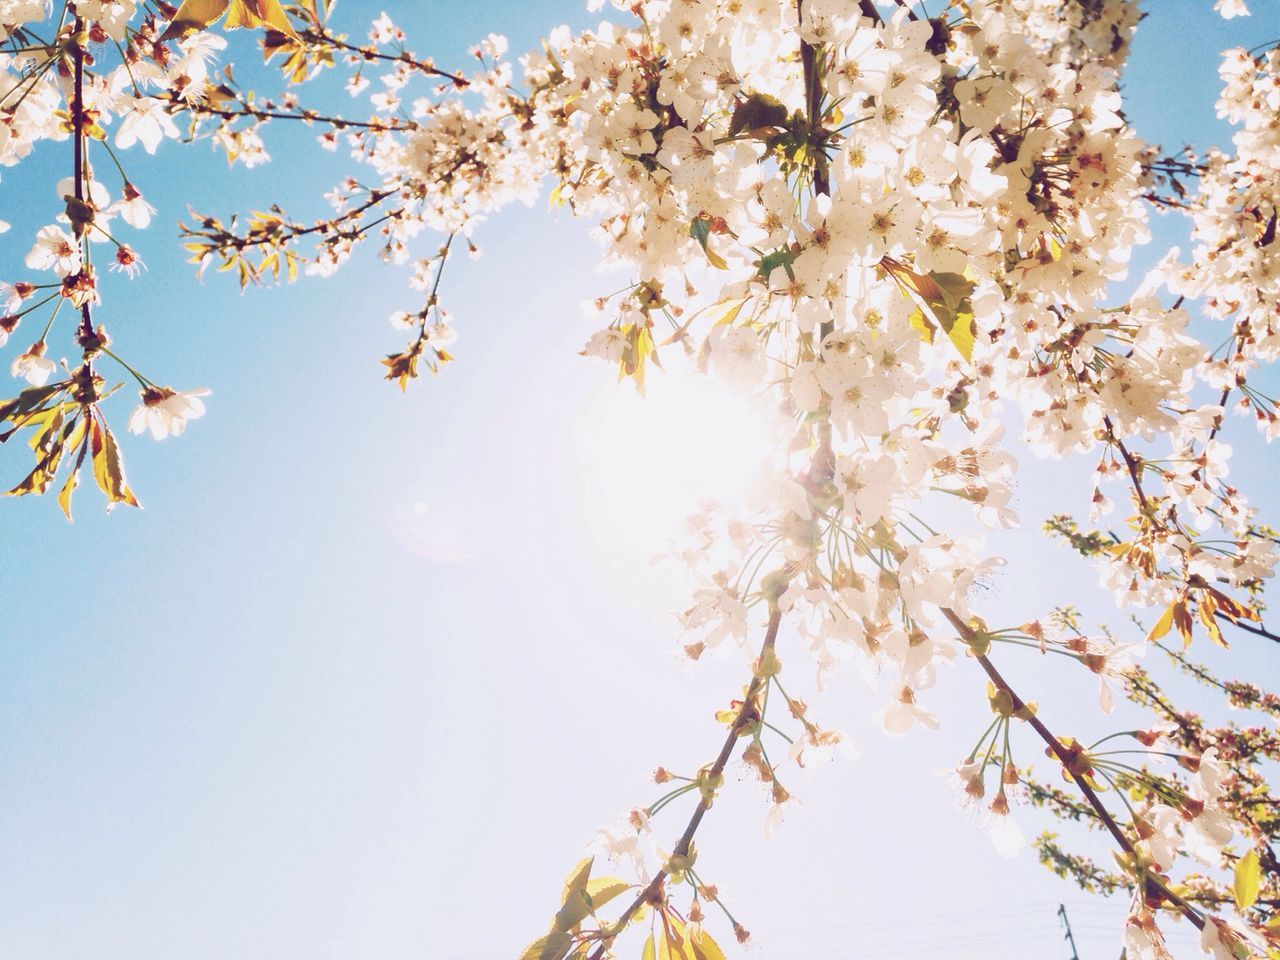 Cherry Blossoms Cherry Tree Spring Connected With Nature Nature On Your Doorstep EyeEm Bestsellers